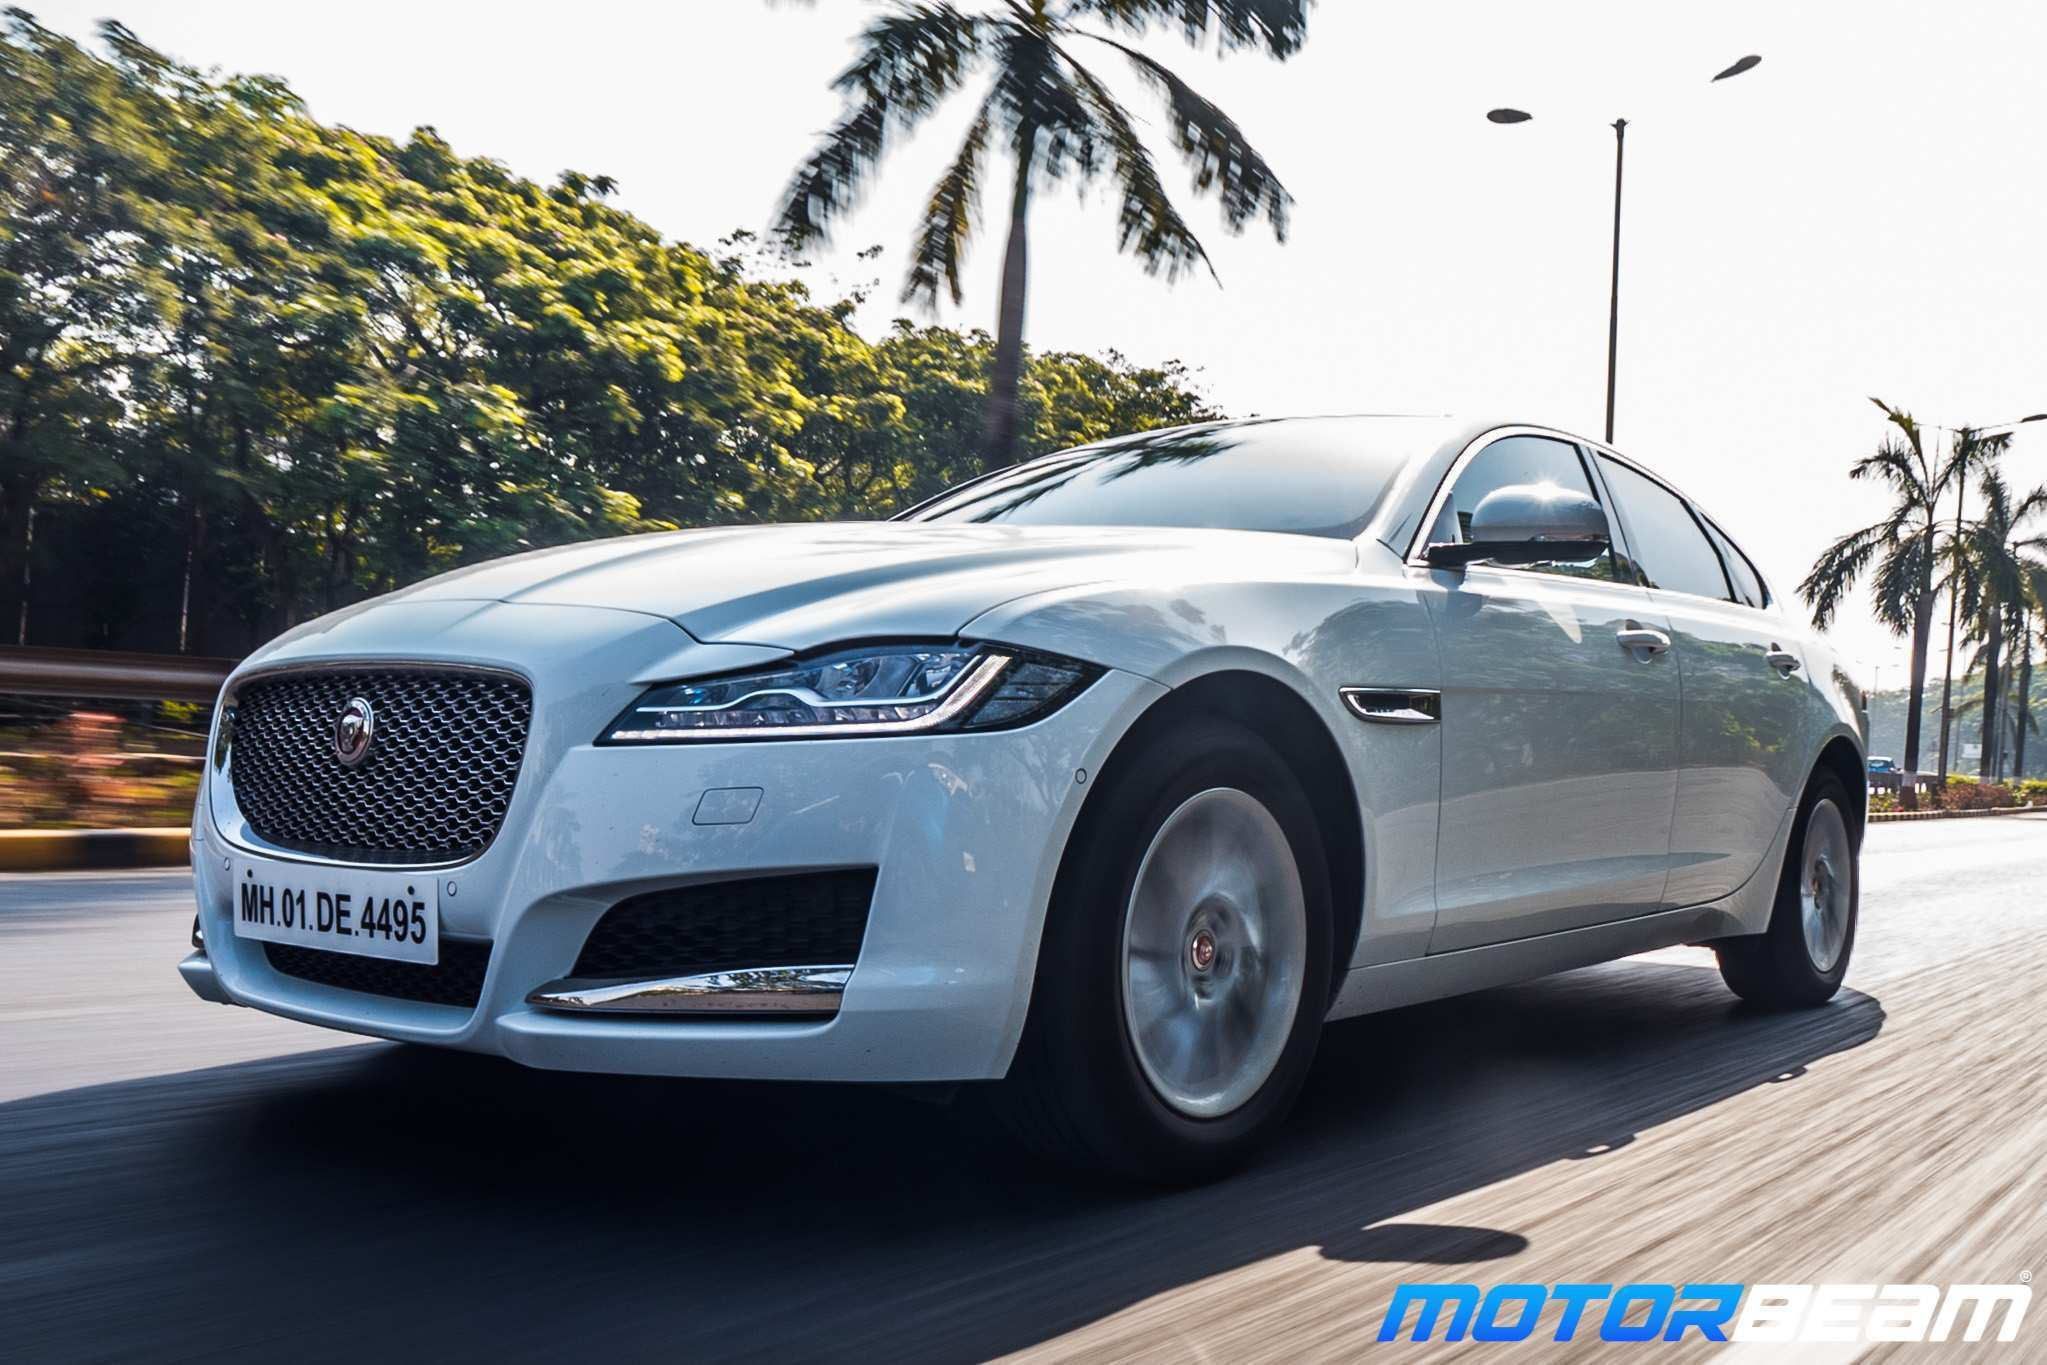 27 All New 2019 Jaguar Price In India Specs And Review